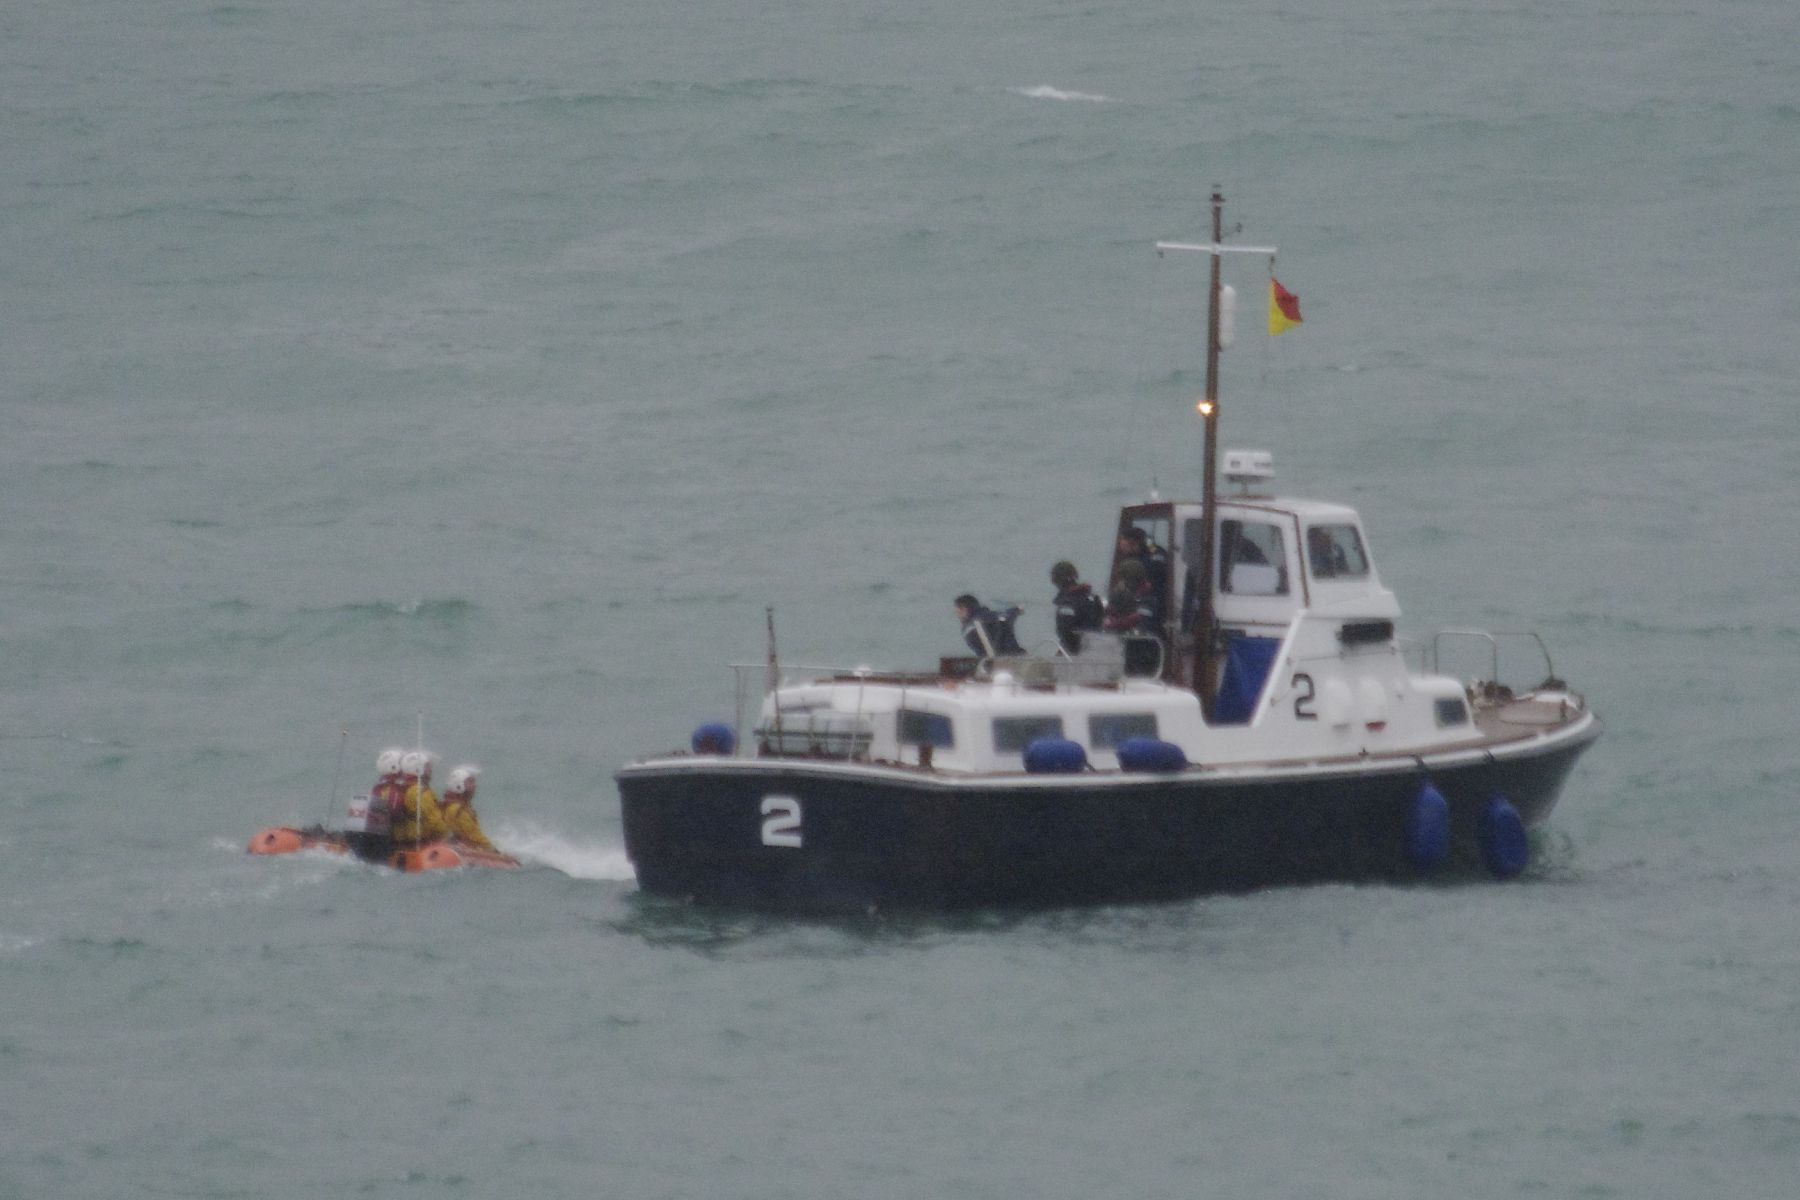 ILB with Picket boat from BRNC